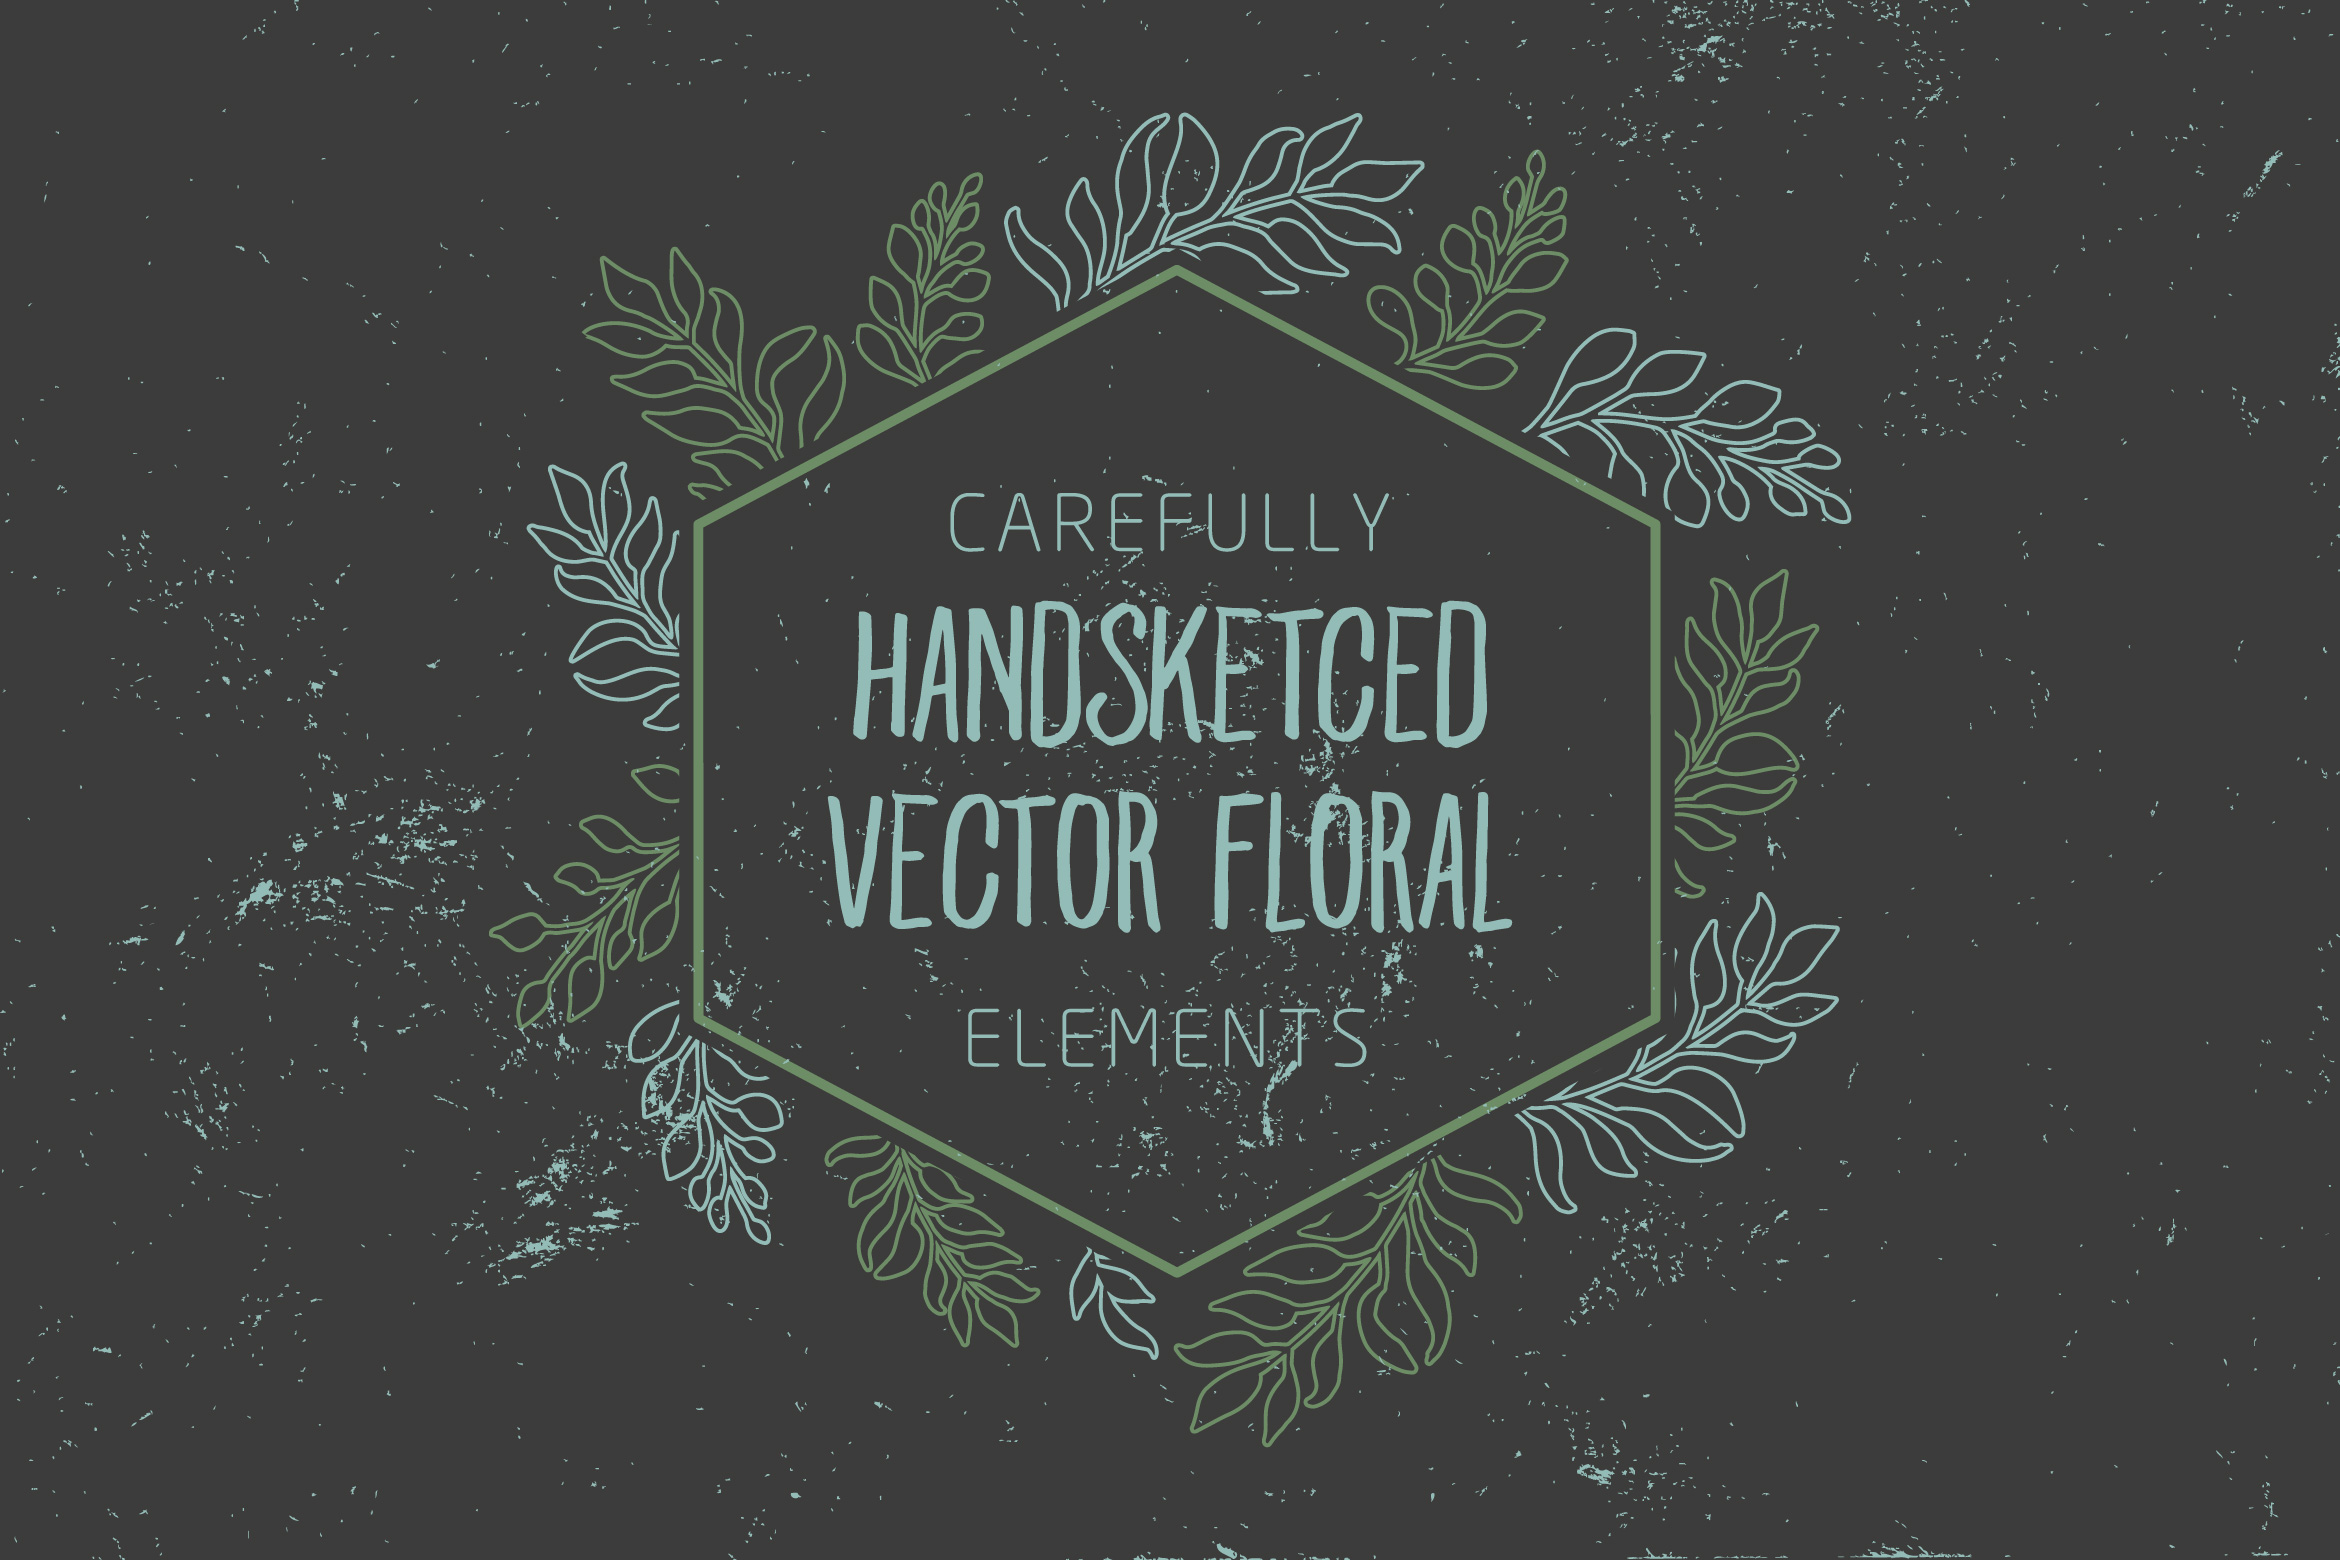 Carefully Handsketched Vector Floral Elements Graphic Illustrations By storictype